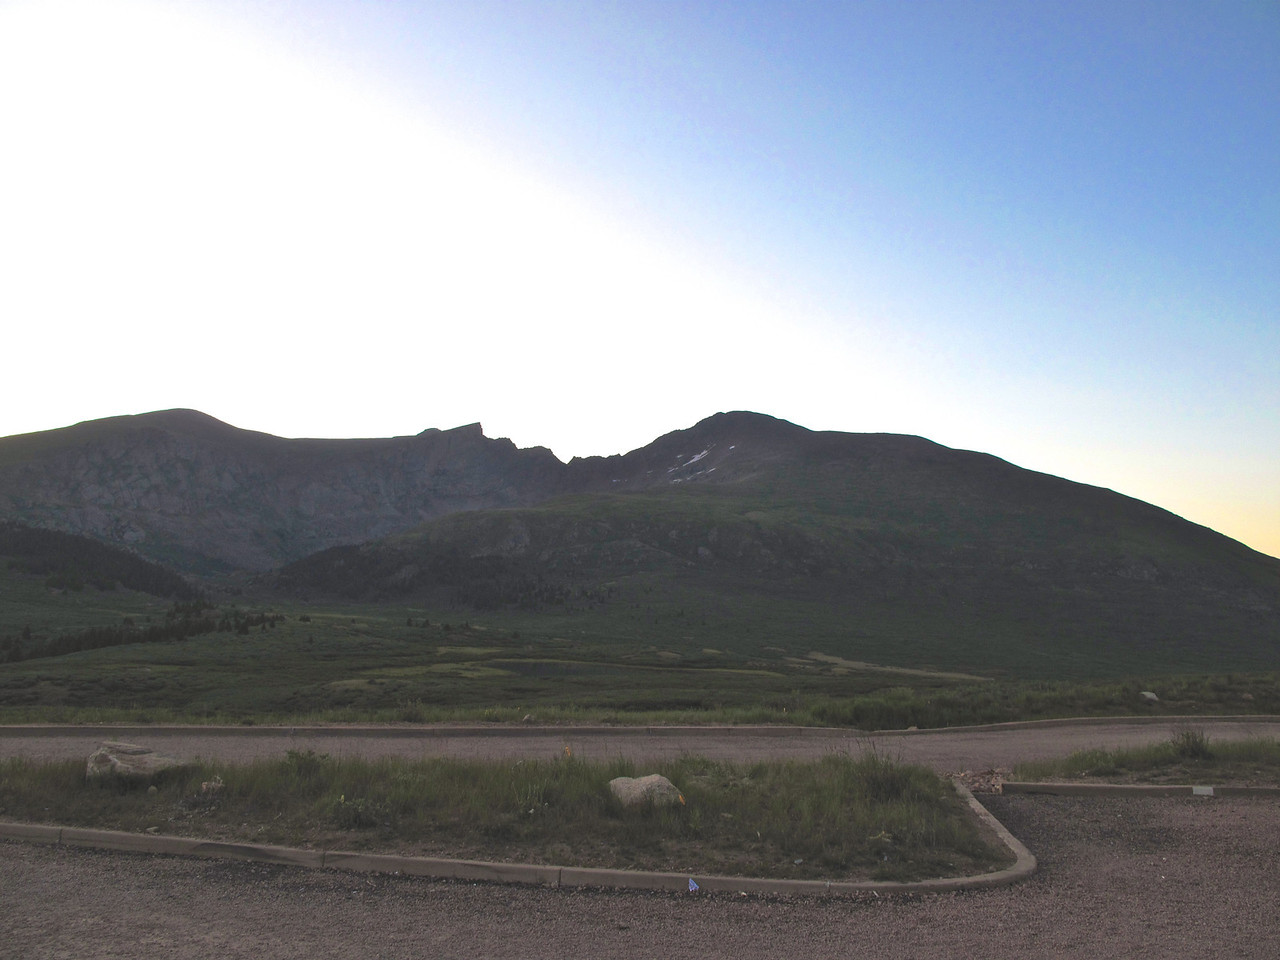 Starting our hike to Mt Bierstadt at 6AM.  Our destination is the peak on the RIGHT.  On the left is Mount Evans.  It's 37 degrees with a light breeze as we start.